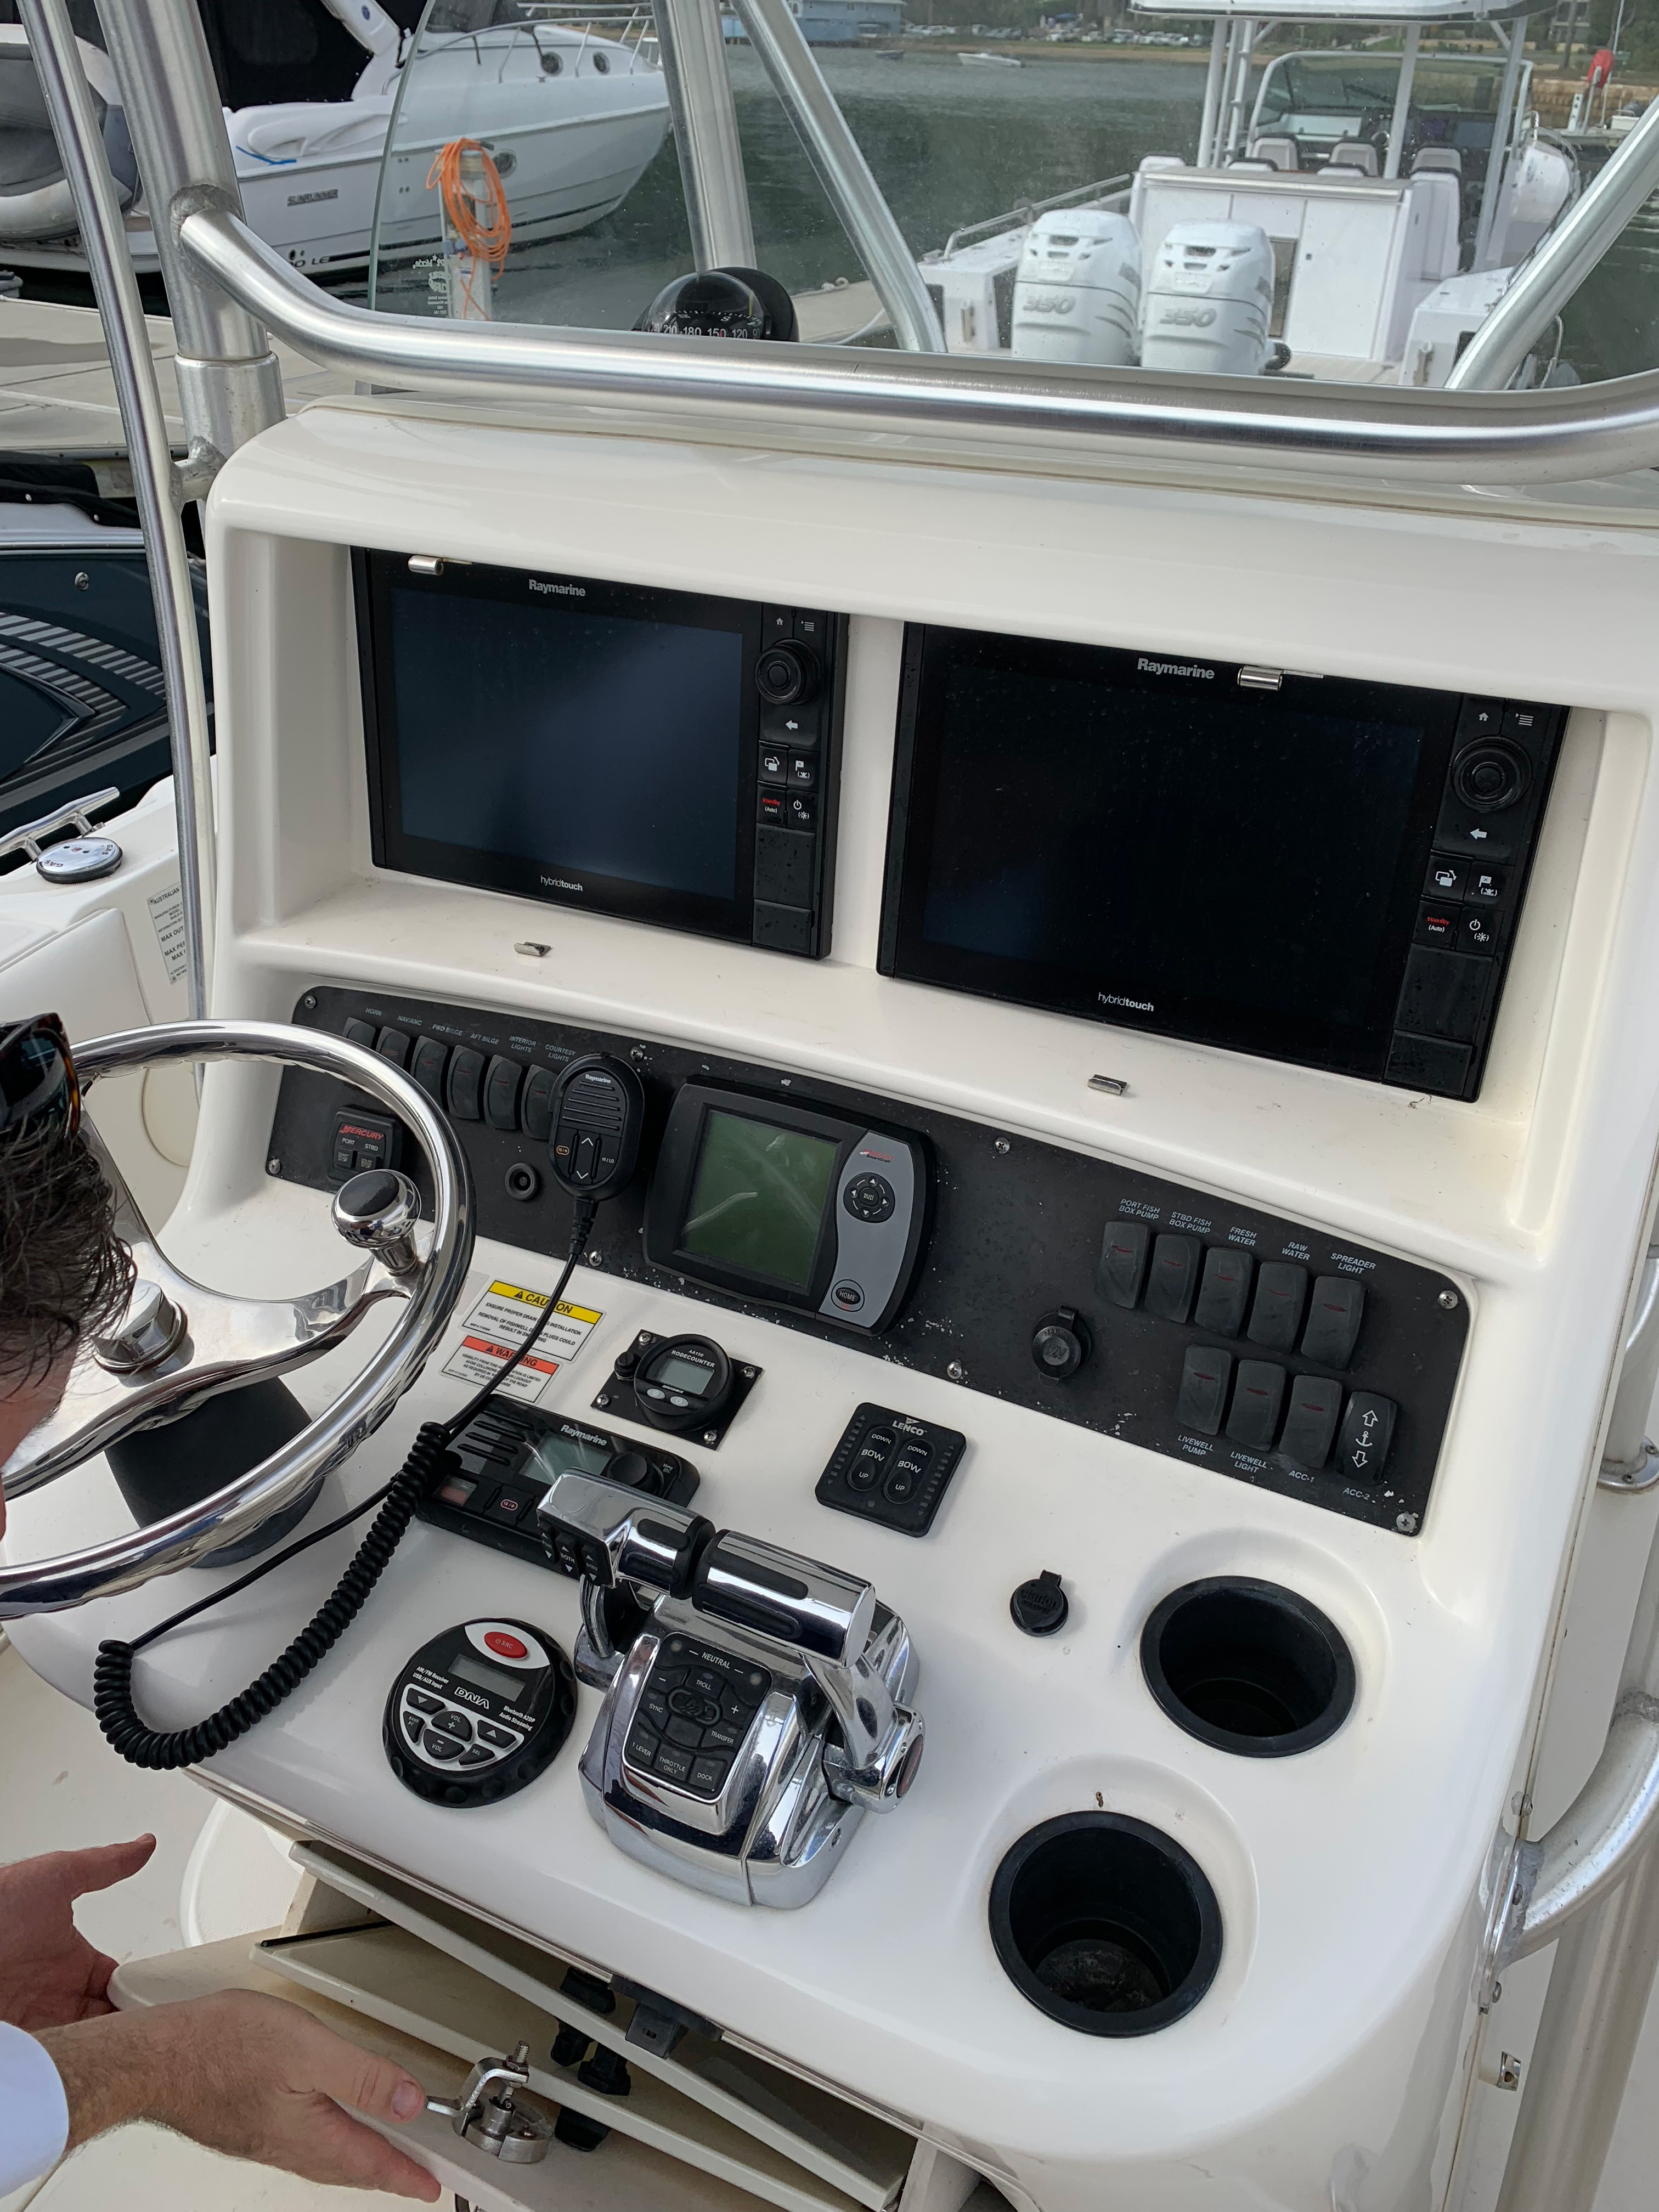 Boston Whaler outrage 240 - Vicsail - Your experts in yachting